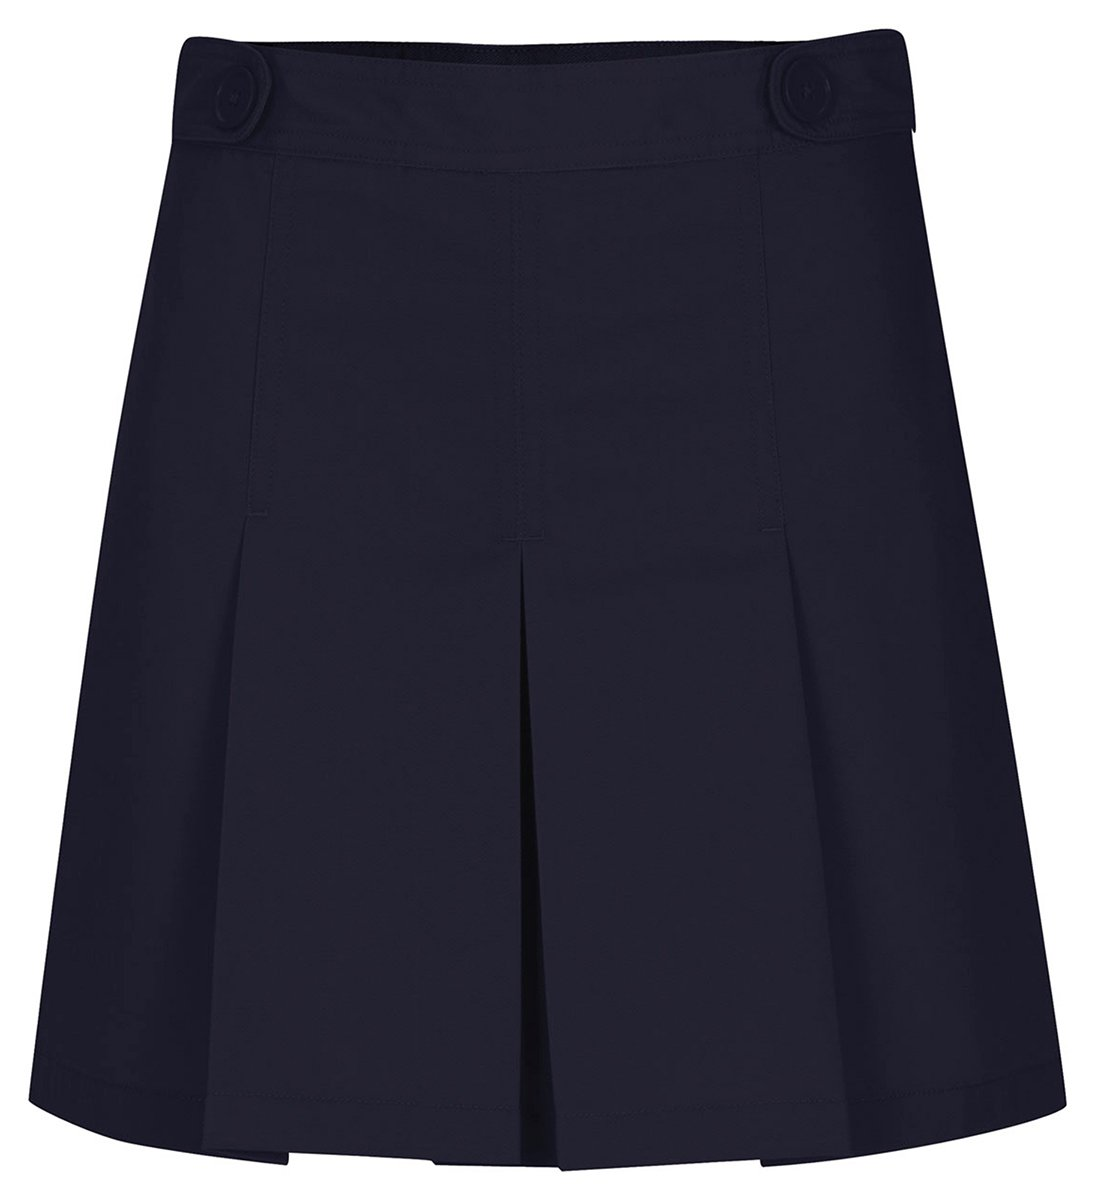 Classroom Junior's Hipster Scooter Skirt with Pleats, Dark Navy, 3/4 by Classroom Uniforms